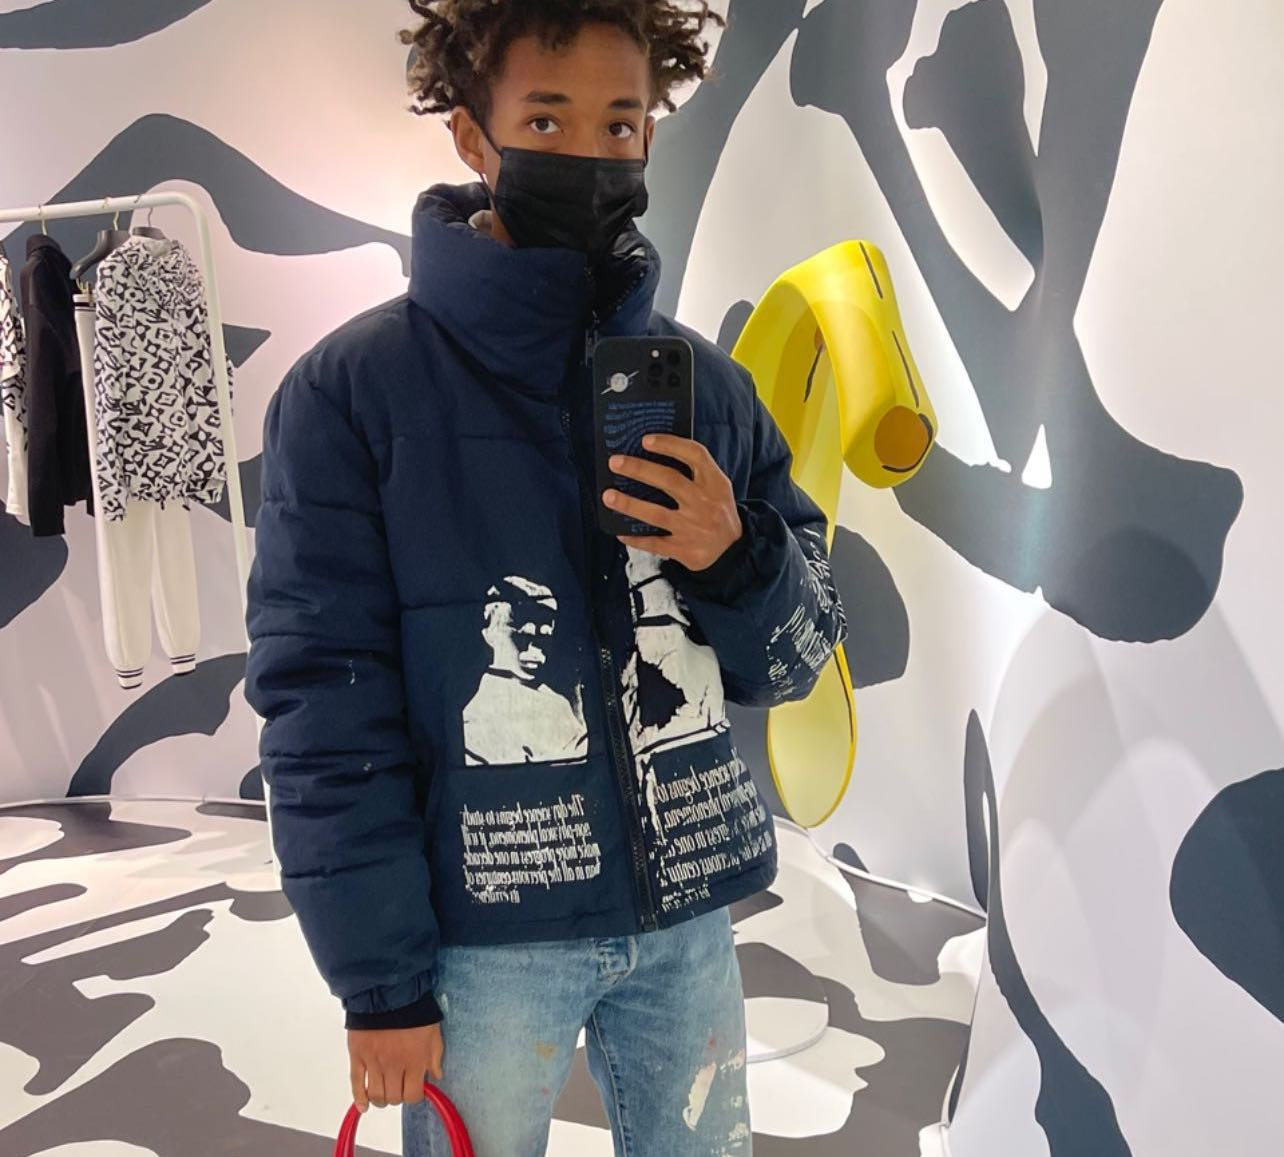 SPOTTED: Jaden Smith Spotlights Louis Vuitton x Urs Fischer Bag